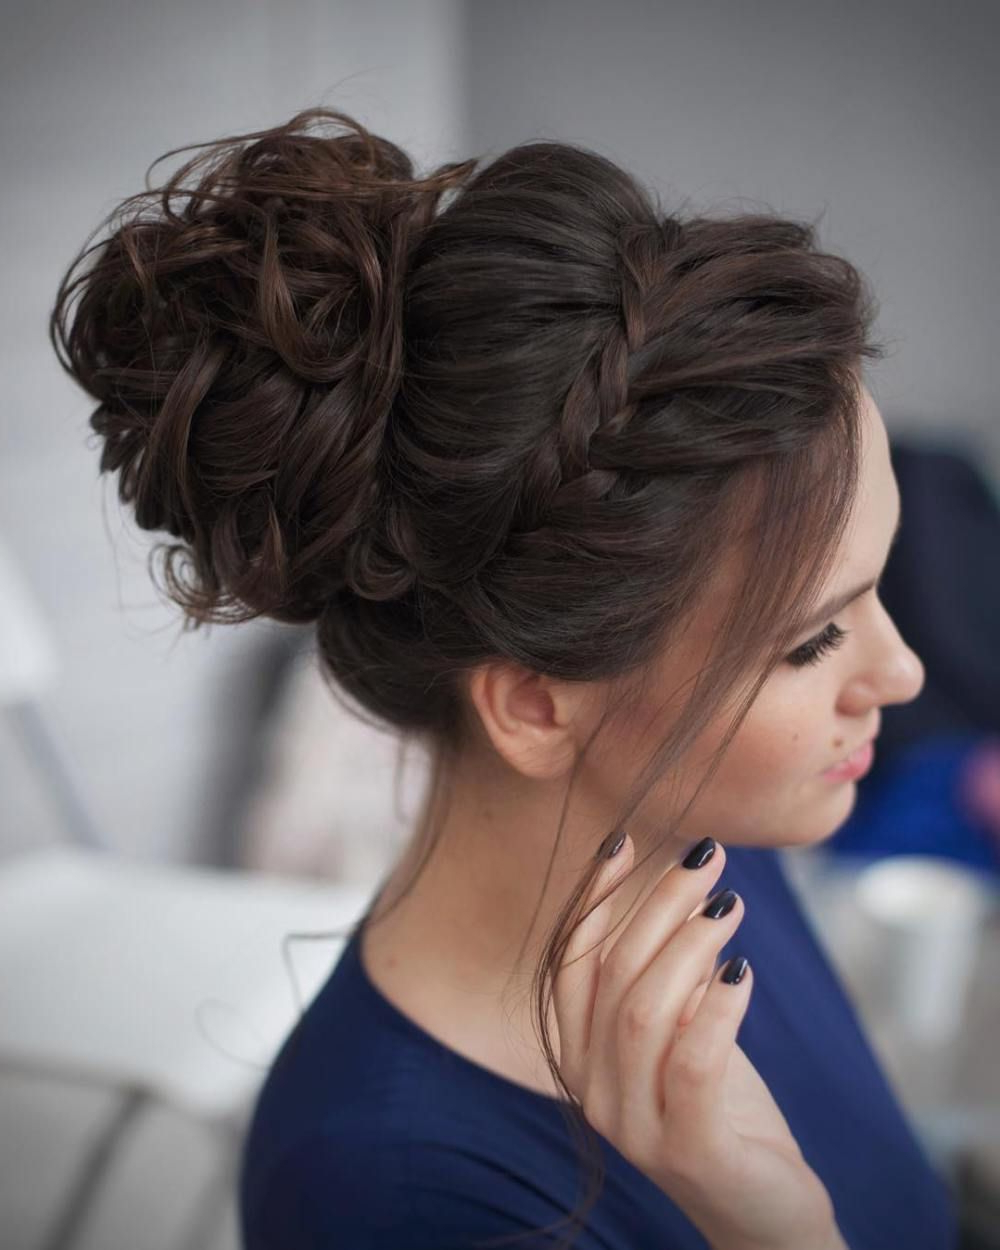 Latest Curled Floral Prom Updos Intended For 40 Most Delightful Prom Updos For Long Hair In 2019 (Gallery 2 of 20)